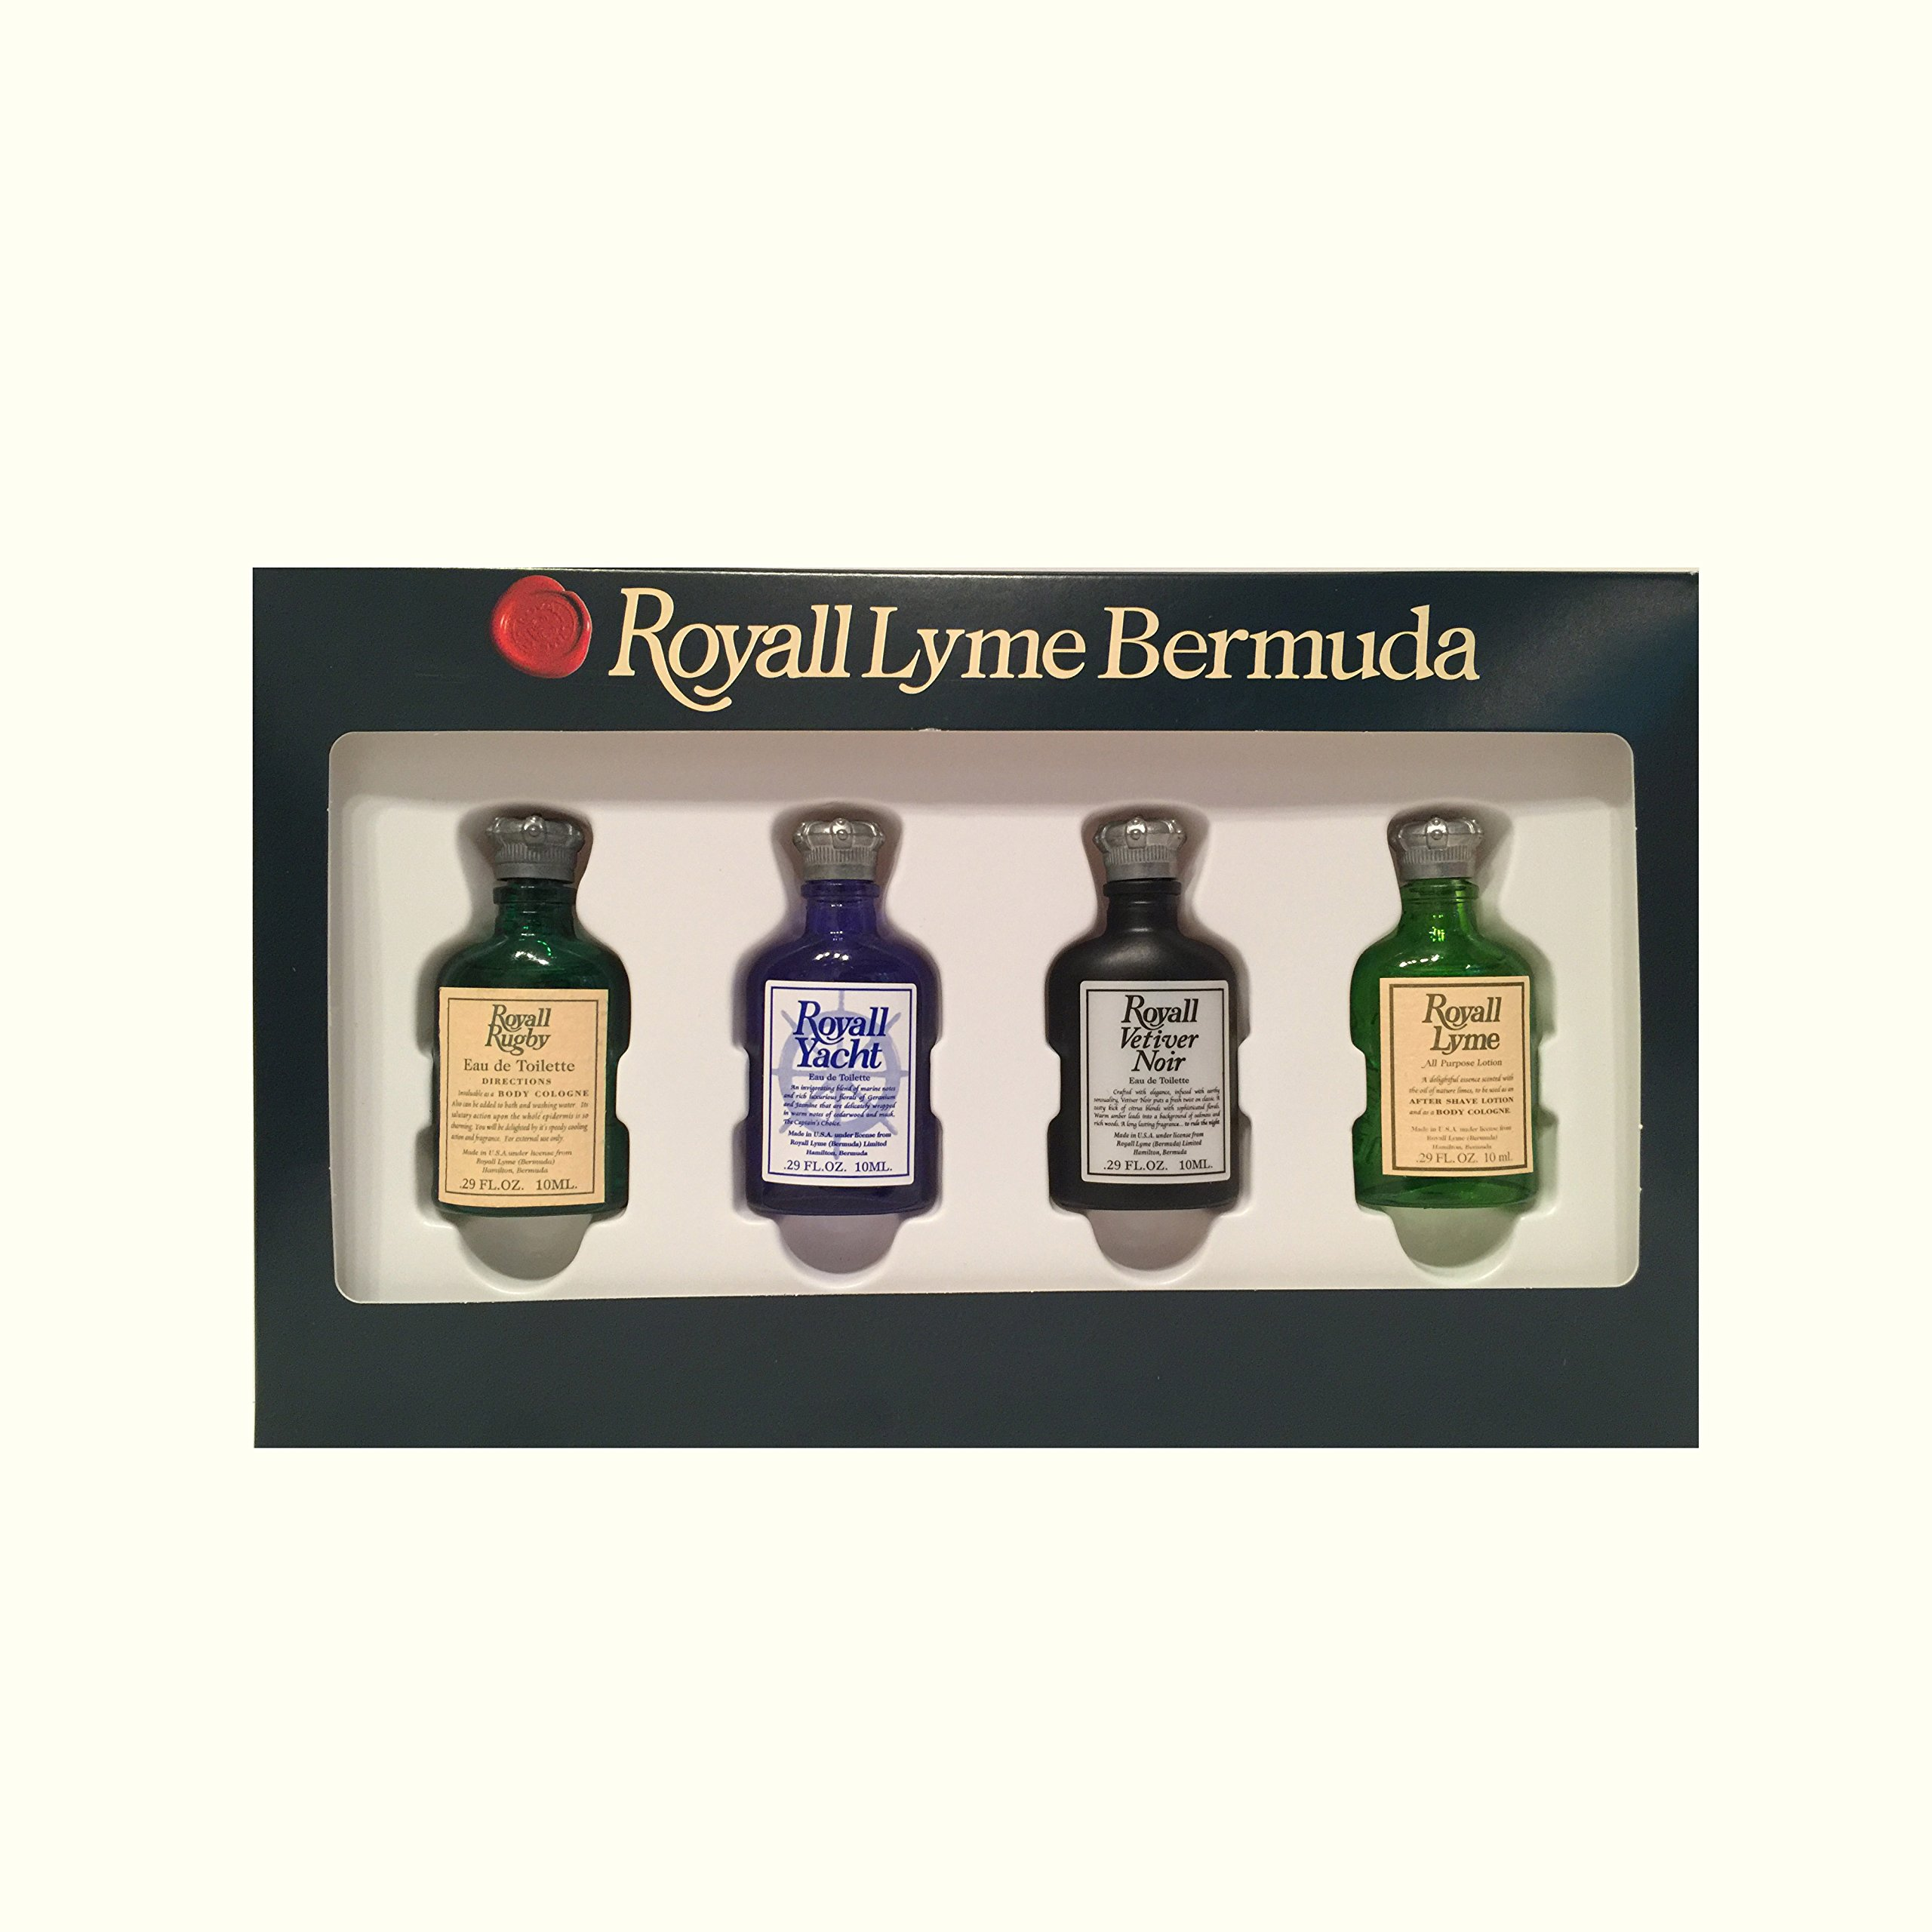 Royall Lyme Bermuda Collection The Royall Master Collection - Mini Set by ROYALL FRAGRANCES